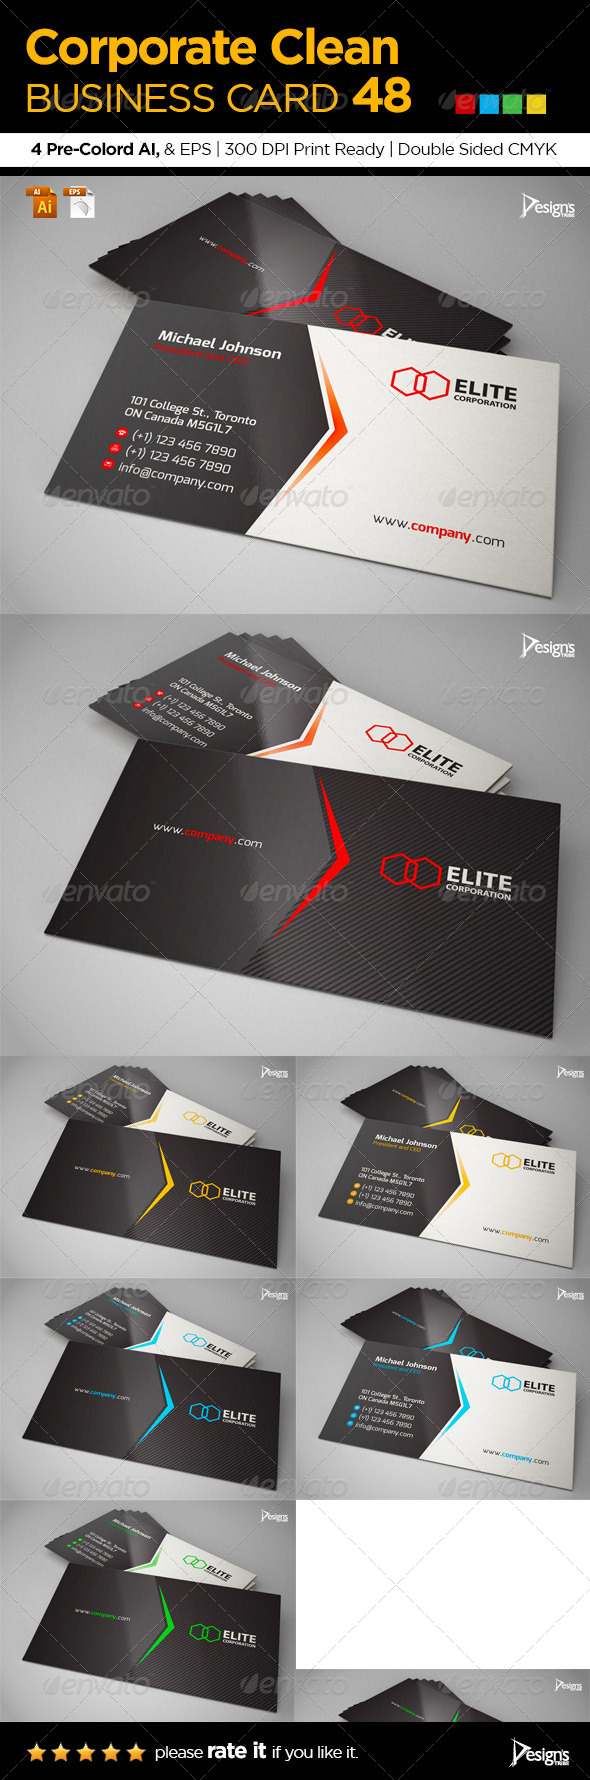 GraphicRiver Corporate Clean Business Card 48 6400575